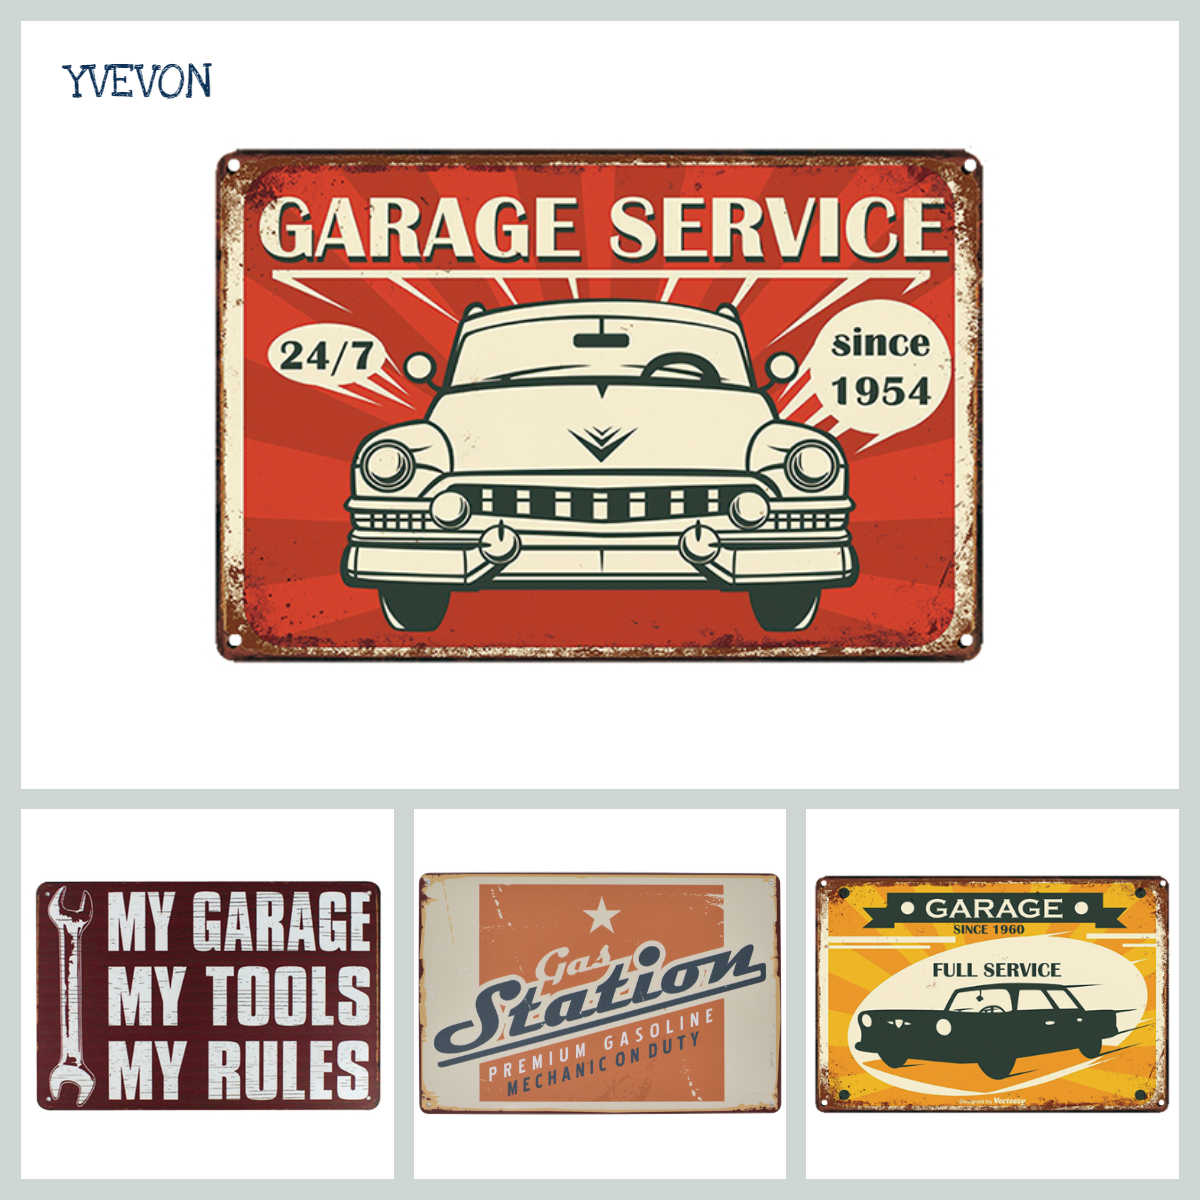 Vintage Garage Service Metal Signs American Bus Poster Pub Bar Car Plaque Shop Home Decorative Wall Art Painting 20x30cm